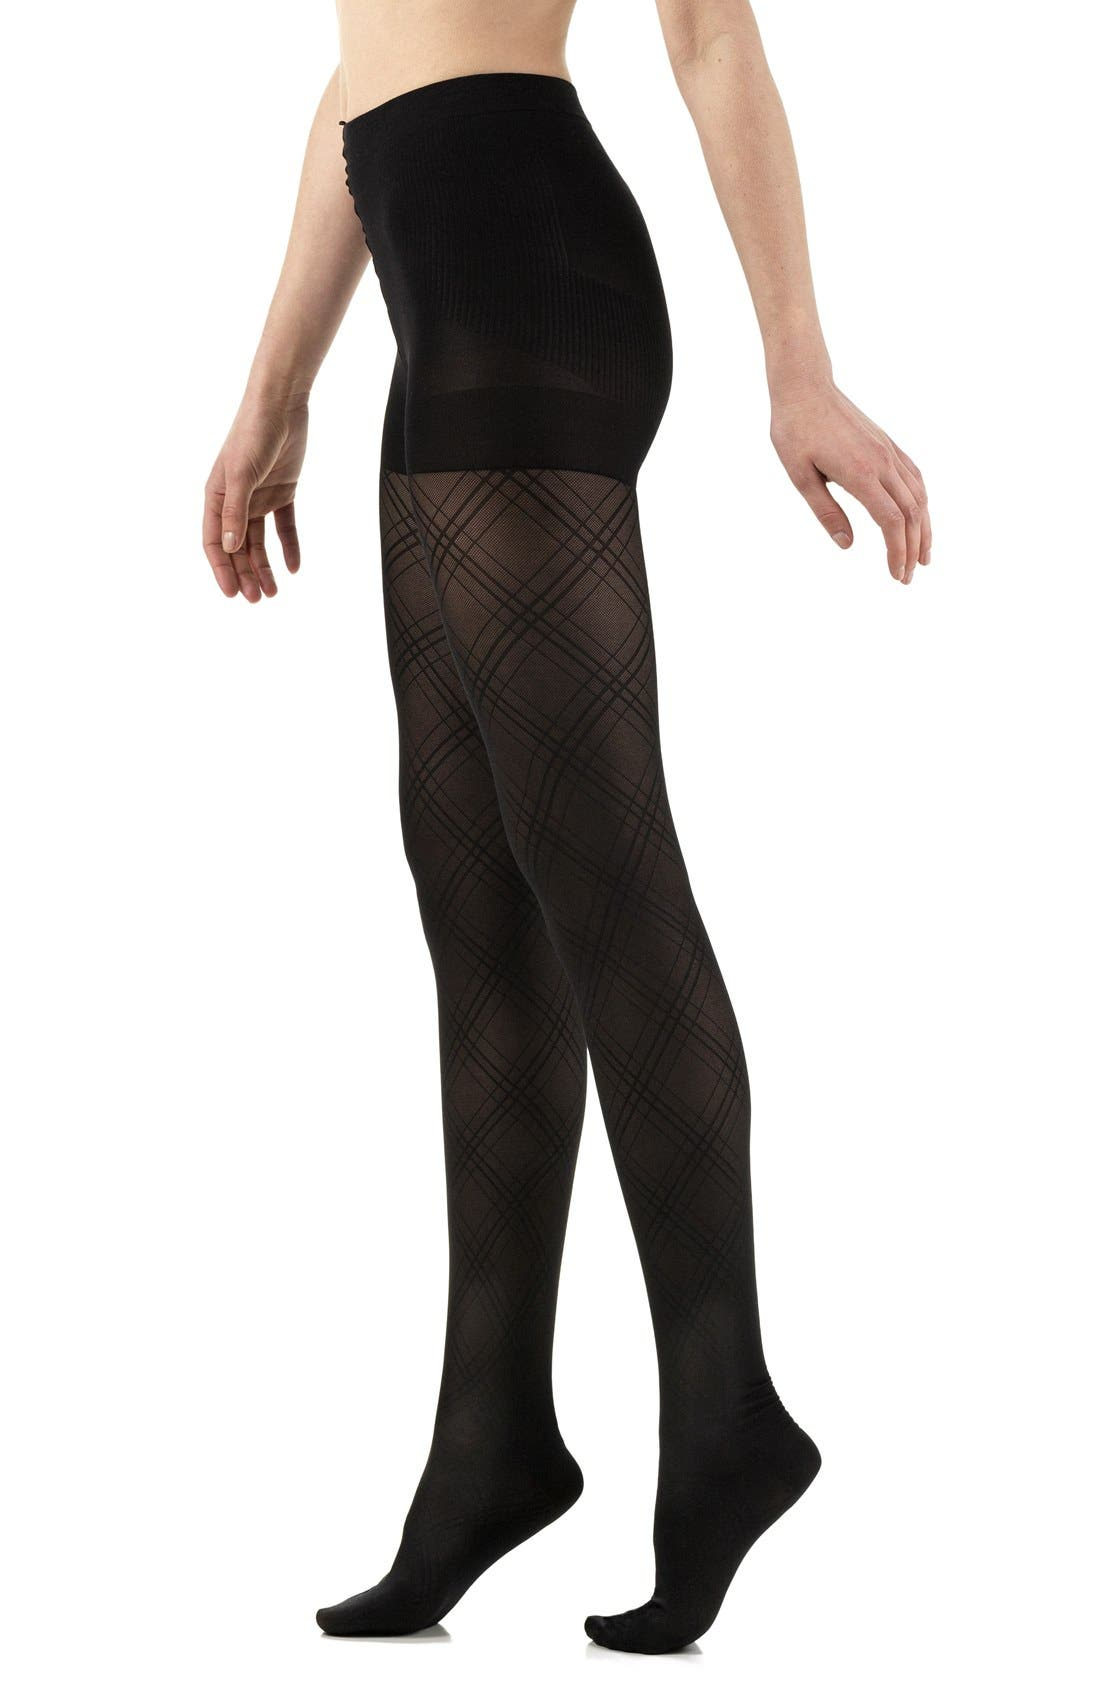 VIM & VIGR Opaque Argyle Compression Tights